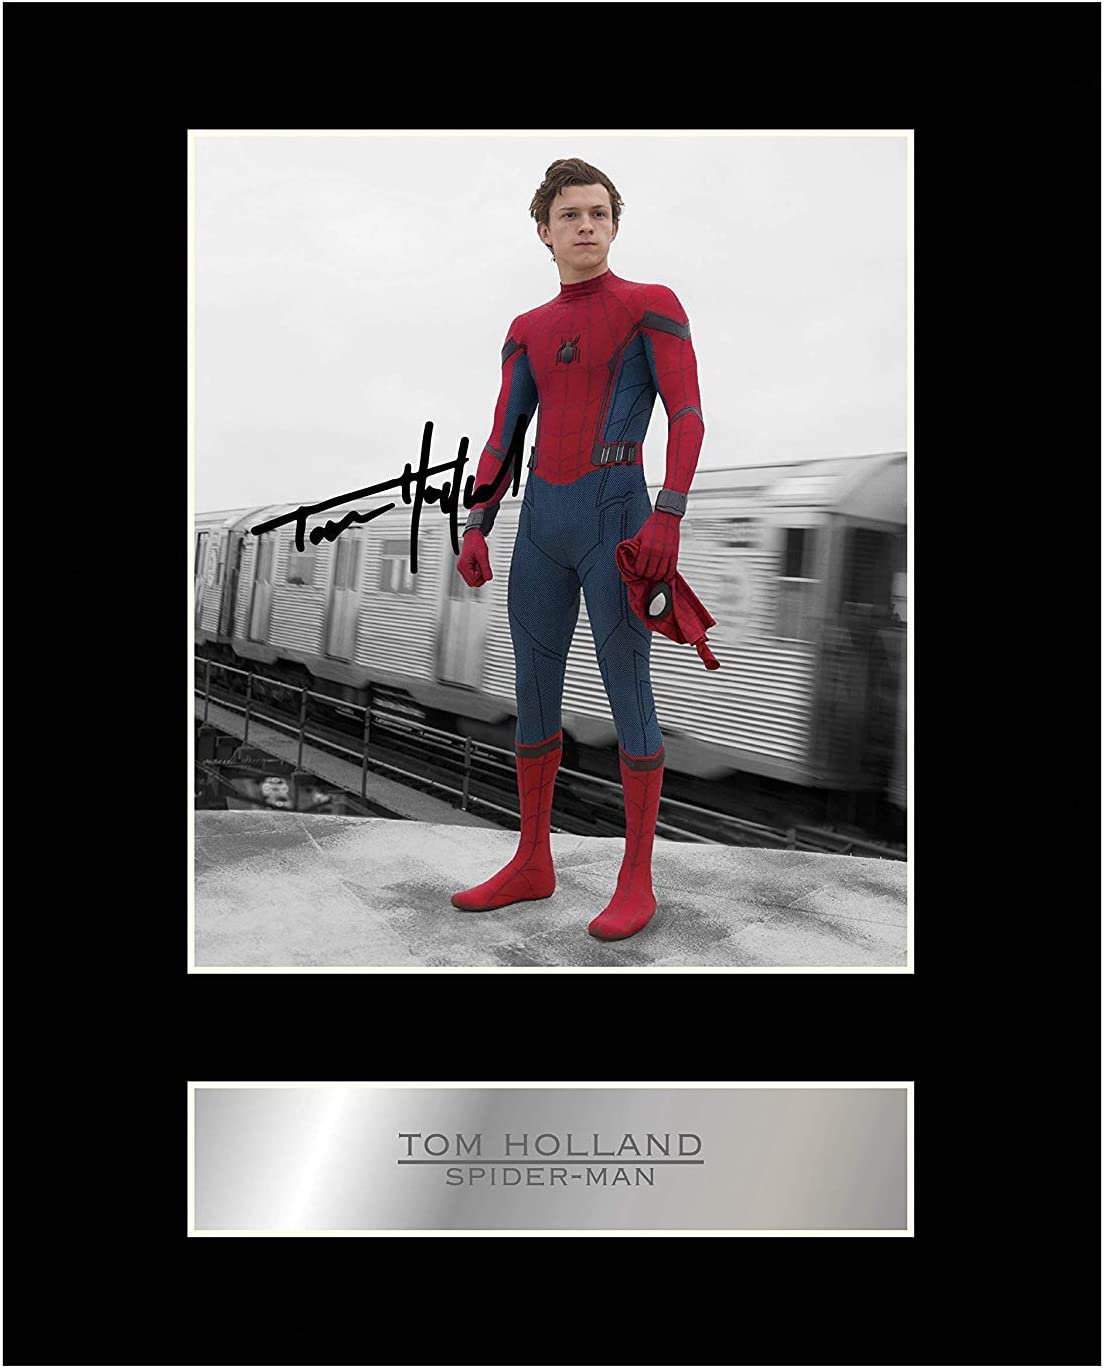 Tom Holland Signed Mounted Branded goods Photo #05 Display Printed Cheap mail order shopping Spider-Man